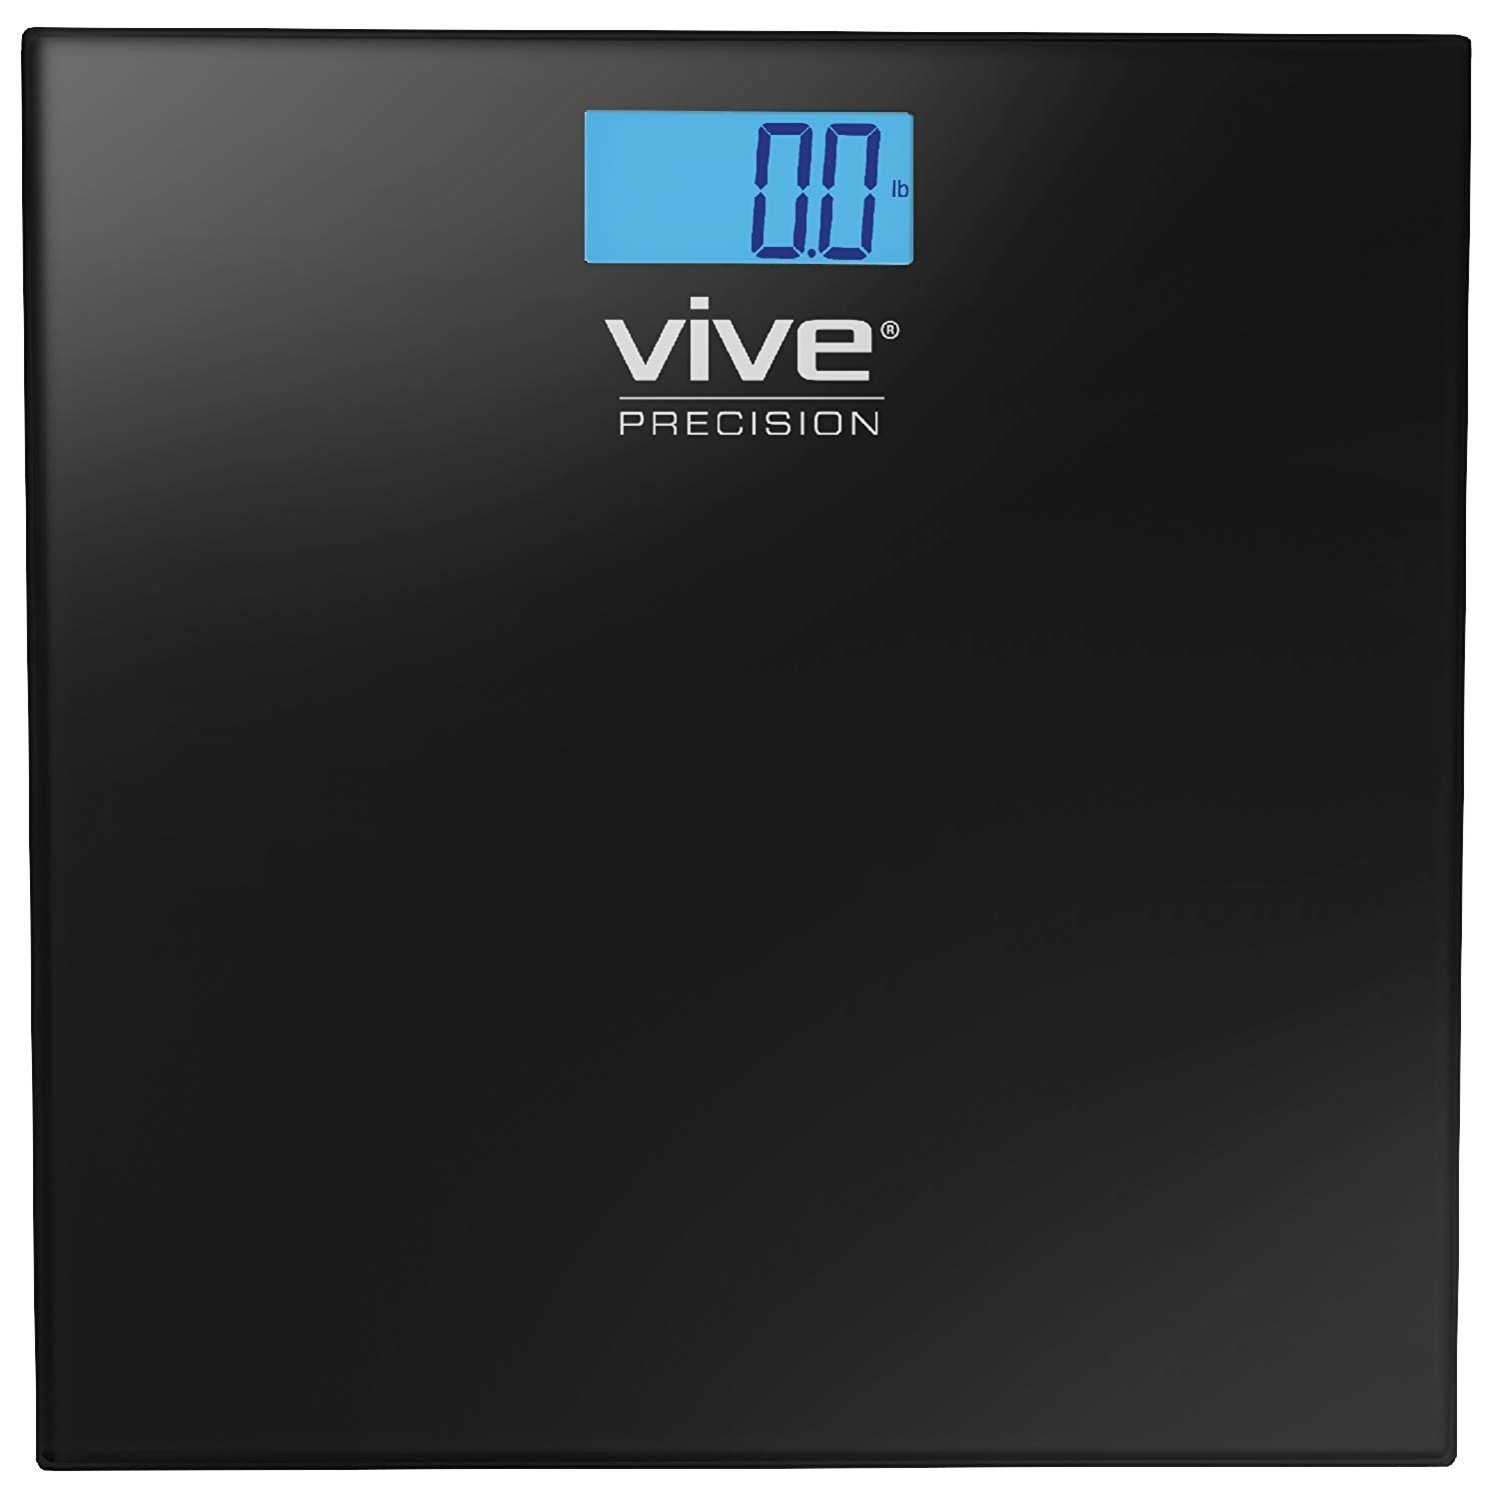 Vive Precision Digital Bathroom Scale - Weight Scale Measuring Device- Electronic Body Scale, Easy to Read, Backlit Display - Accurate to .2 LBs, Black